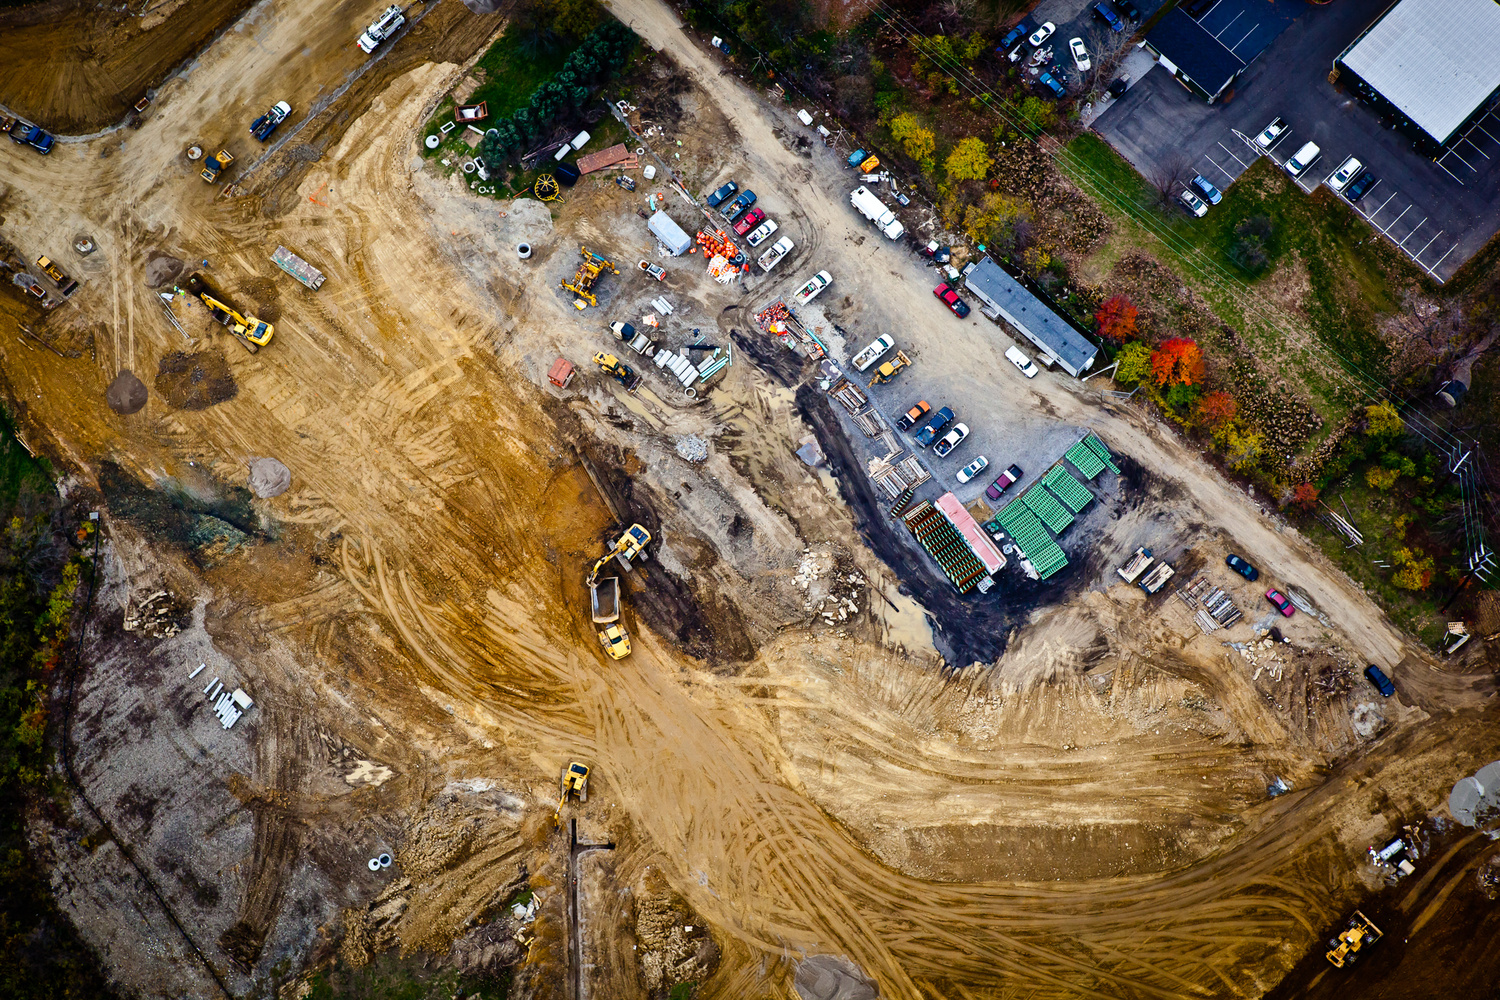 Aerial Photo of Construction Site by Rick Lohre